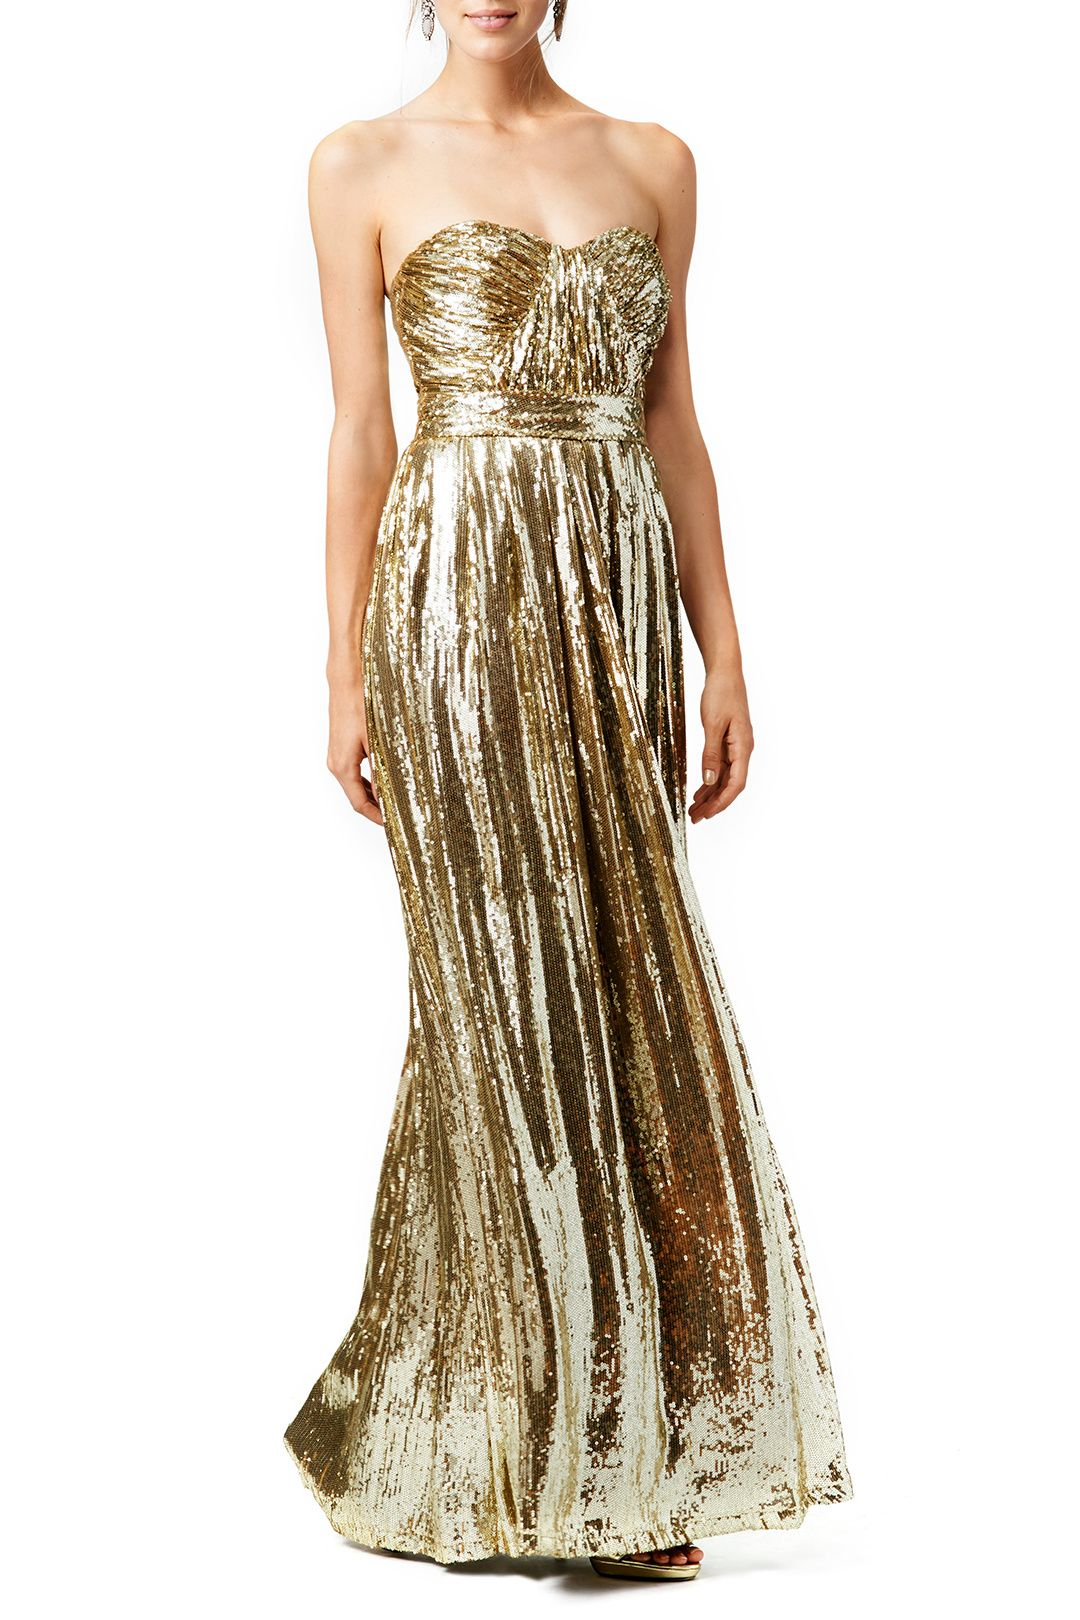 Screen Siren Gown | Badgley mischka, Sirens and Gowns